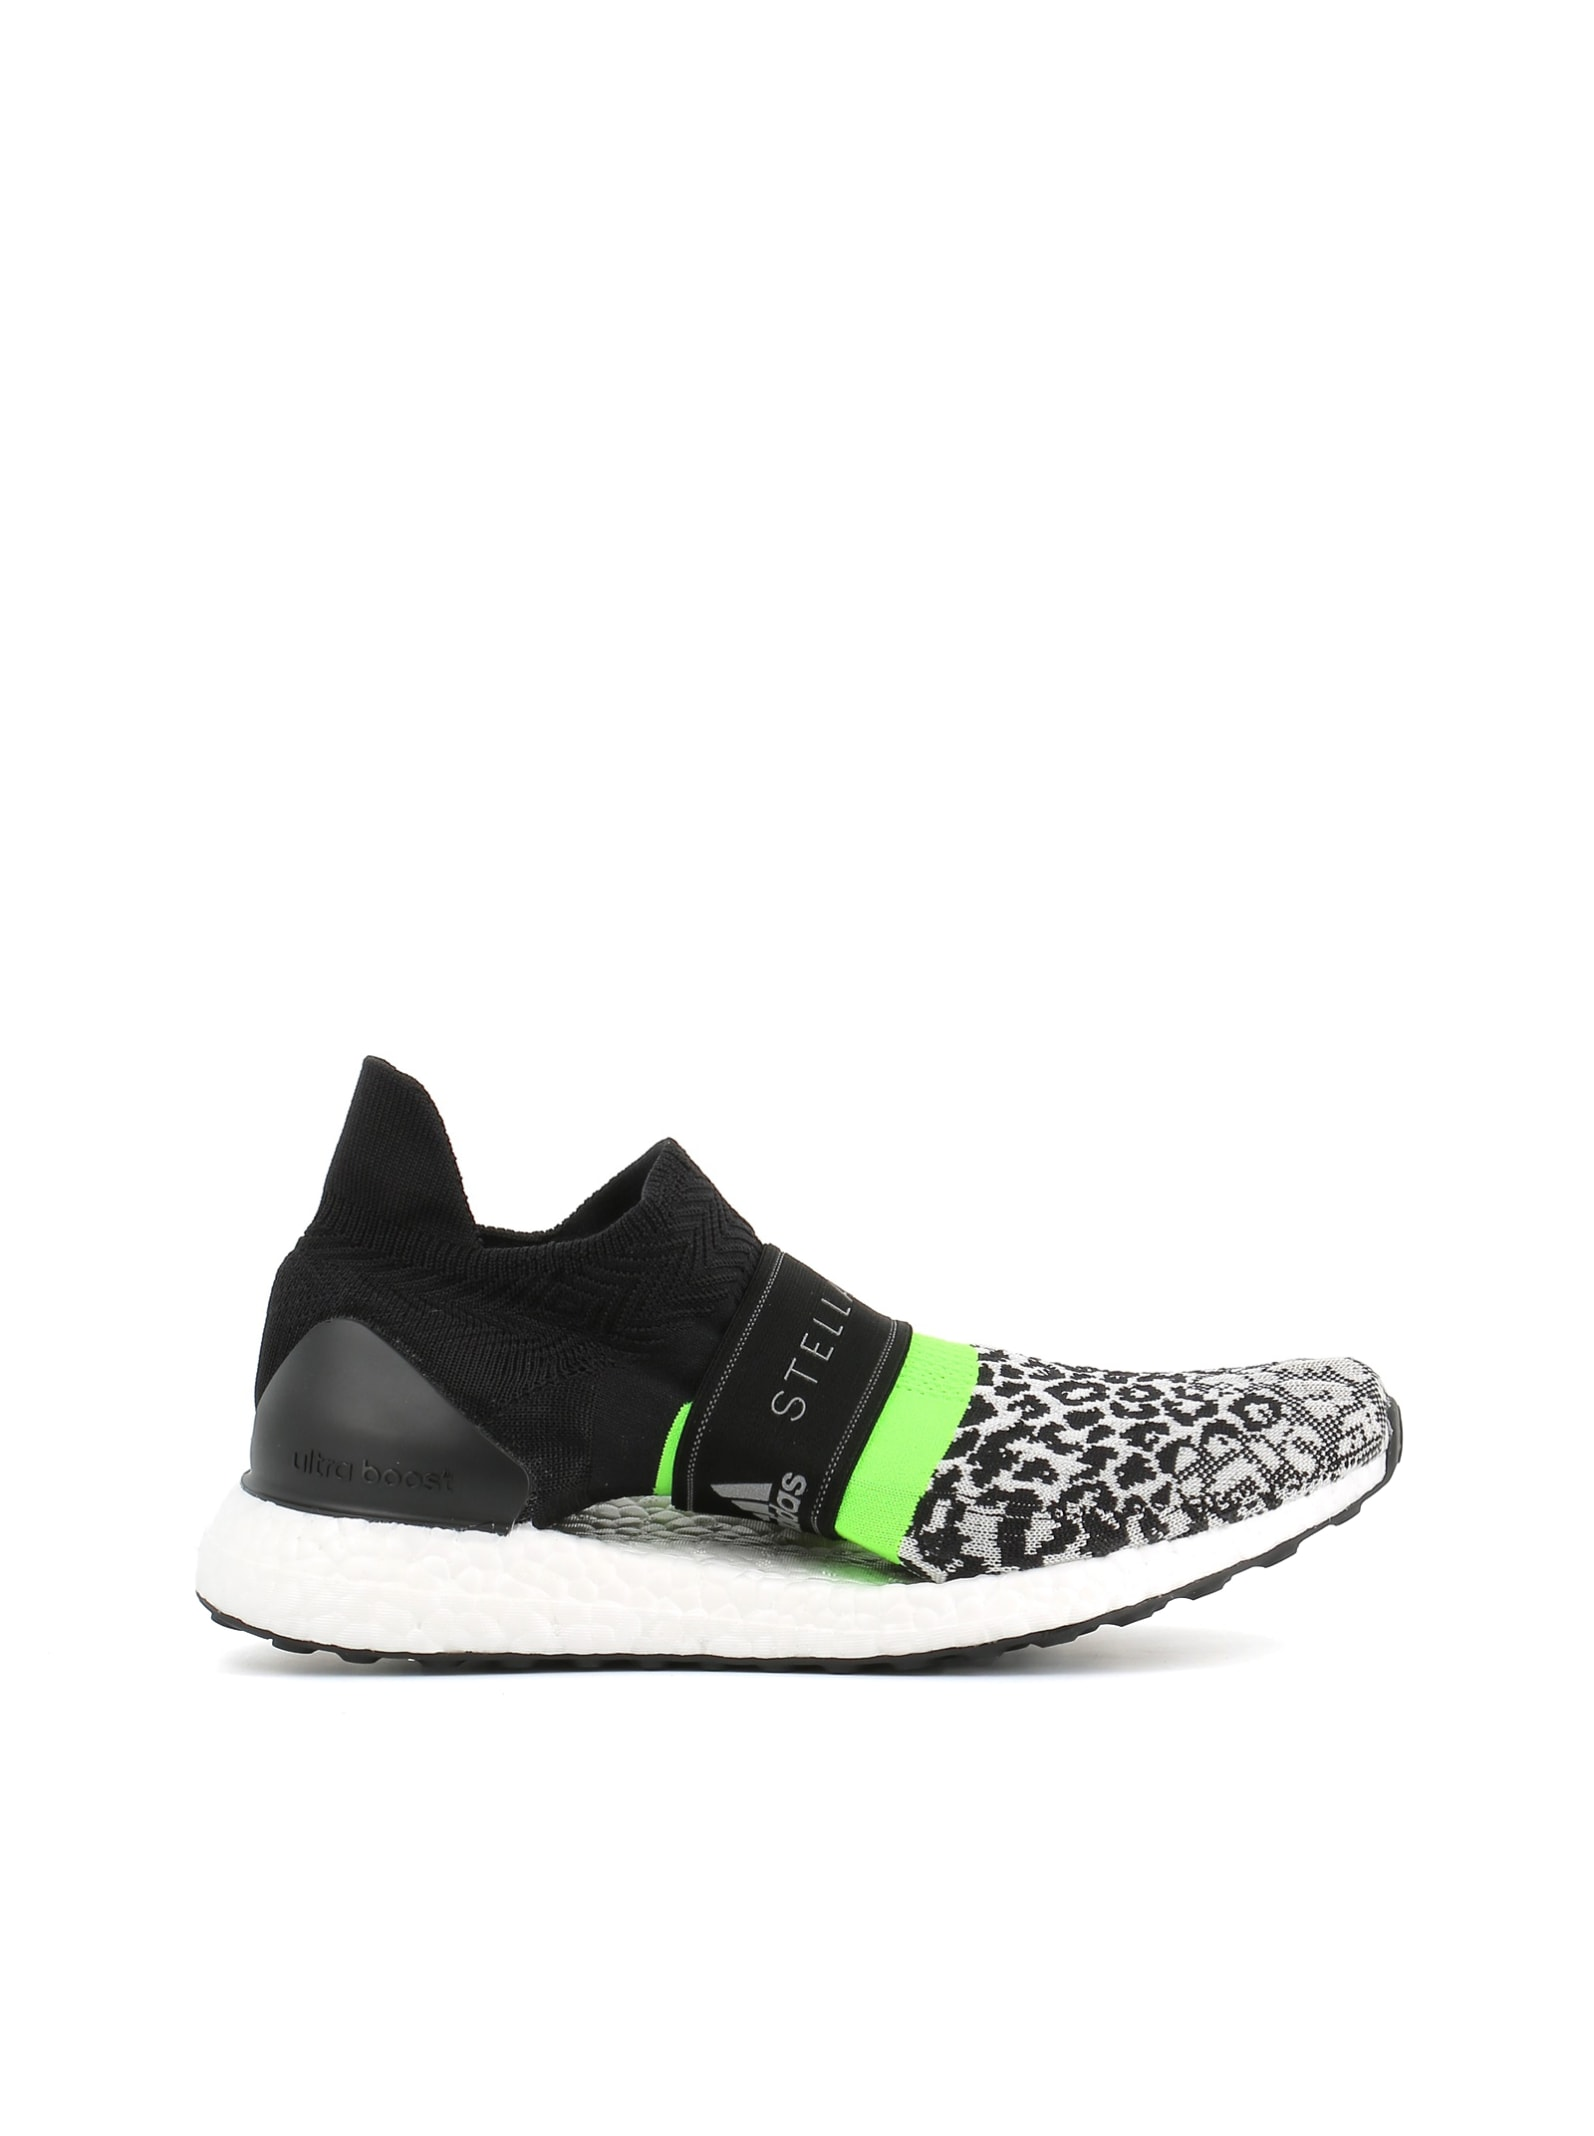 new style 0dc5a 25dc6 Adidas By Stella Mccartney Sneaker